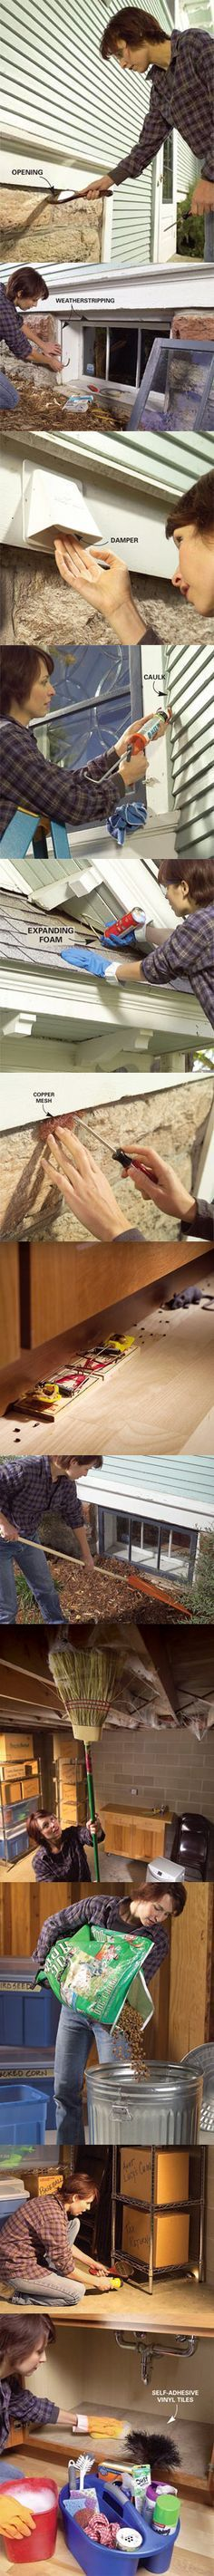 If unwanted critters are waging war on your house, it's time to fight back. Here are some effective pest-fighting strategies. We'll give you tips about how to close the entryways that let critters in, and also how to evict them if they manage to get past your defenses. Use the fall pest prevention tips at http://www.familyhandyman.com/DIY-Projects/Outdoor-Projects/Yard/Pests/fall-pest-prevention-tips to keep pest out of your home.